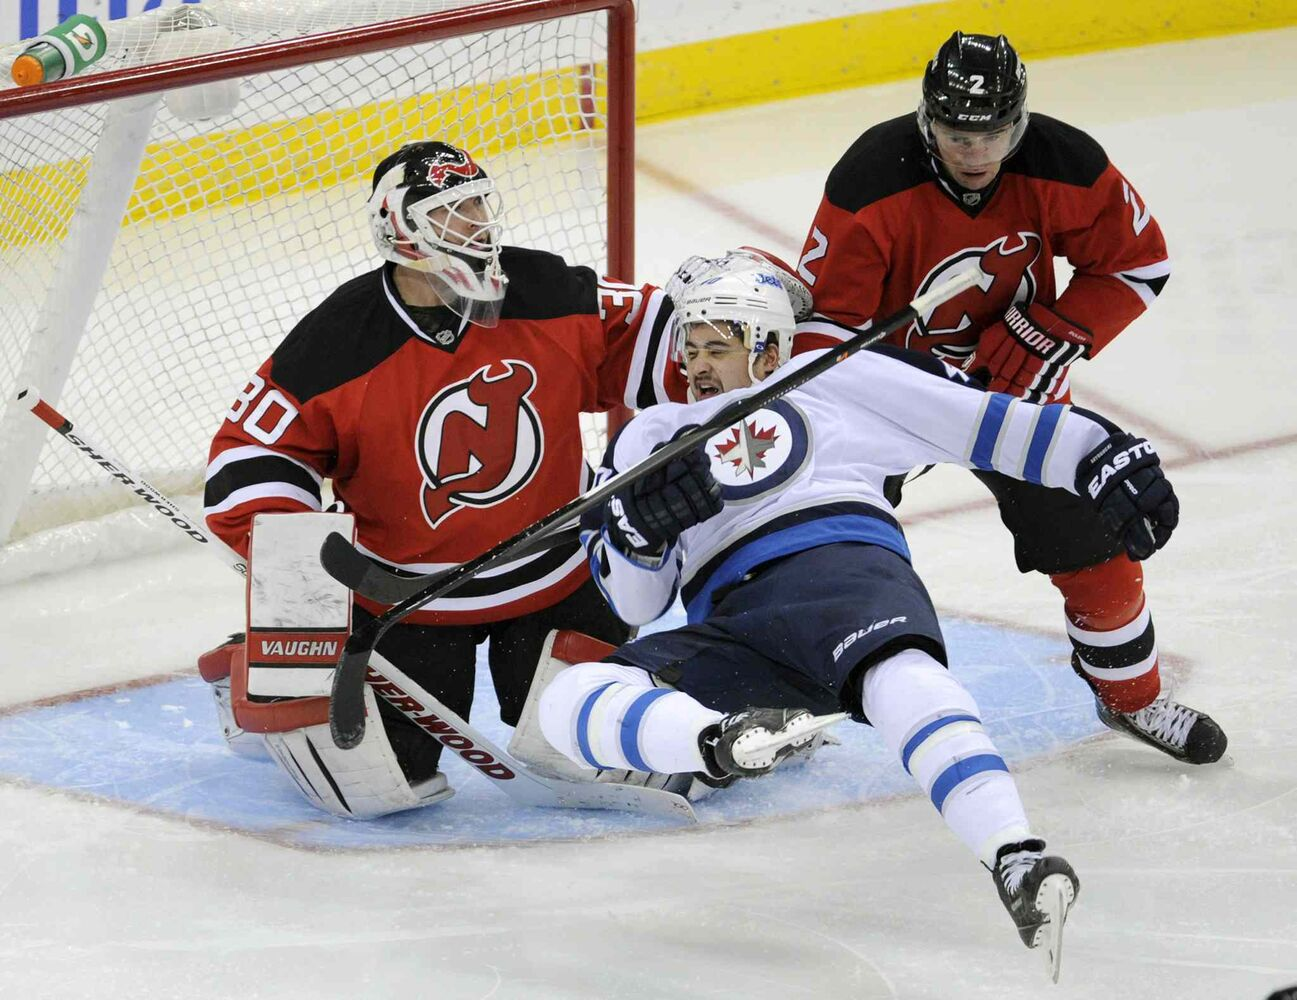 Winnipeg Jets forward Devin Setoguchi goes down after getting hit with the puck in front of New Jersey Devils goaltender Martin Brodeur and defenceman Marek Zidlicky during the third period. (BILL KOSTROUN / THE ASSOCIATED PRESS)